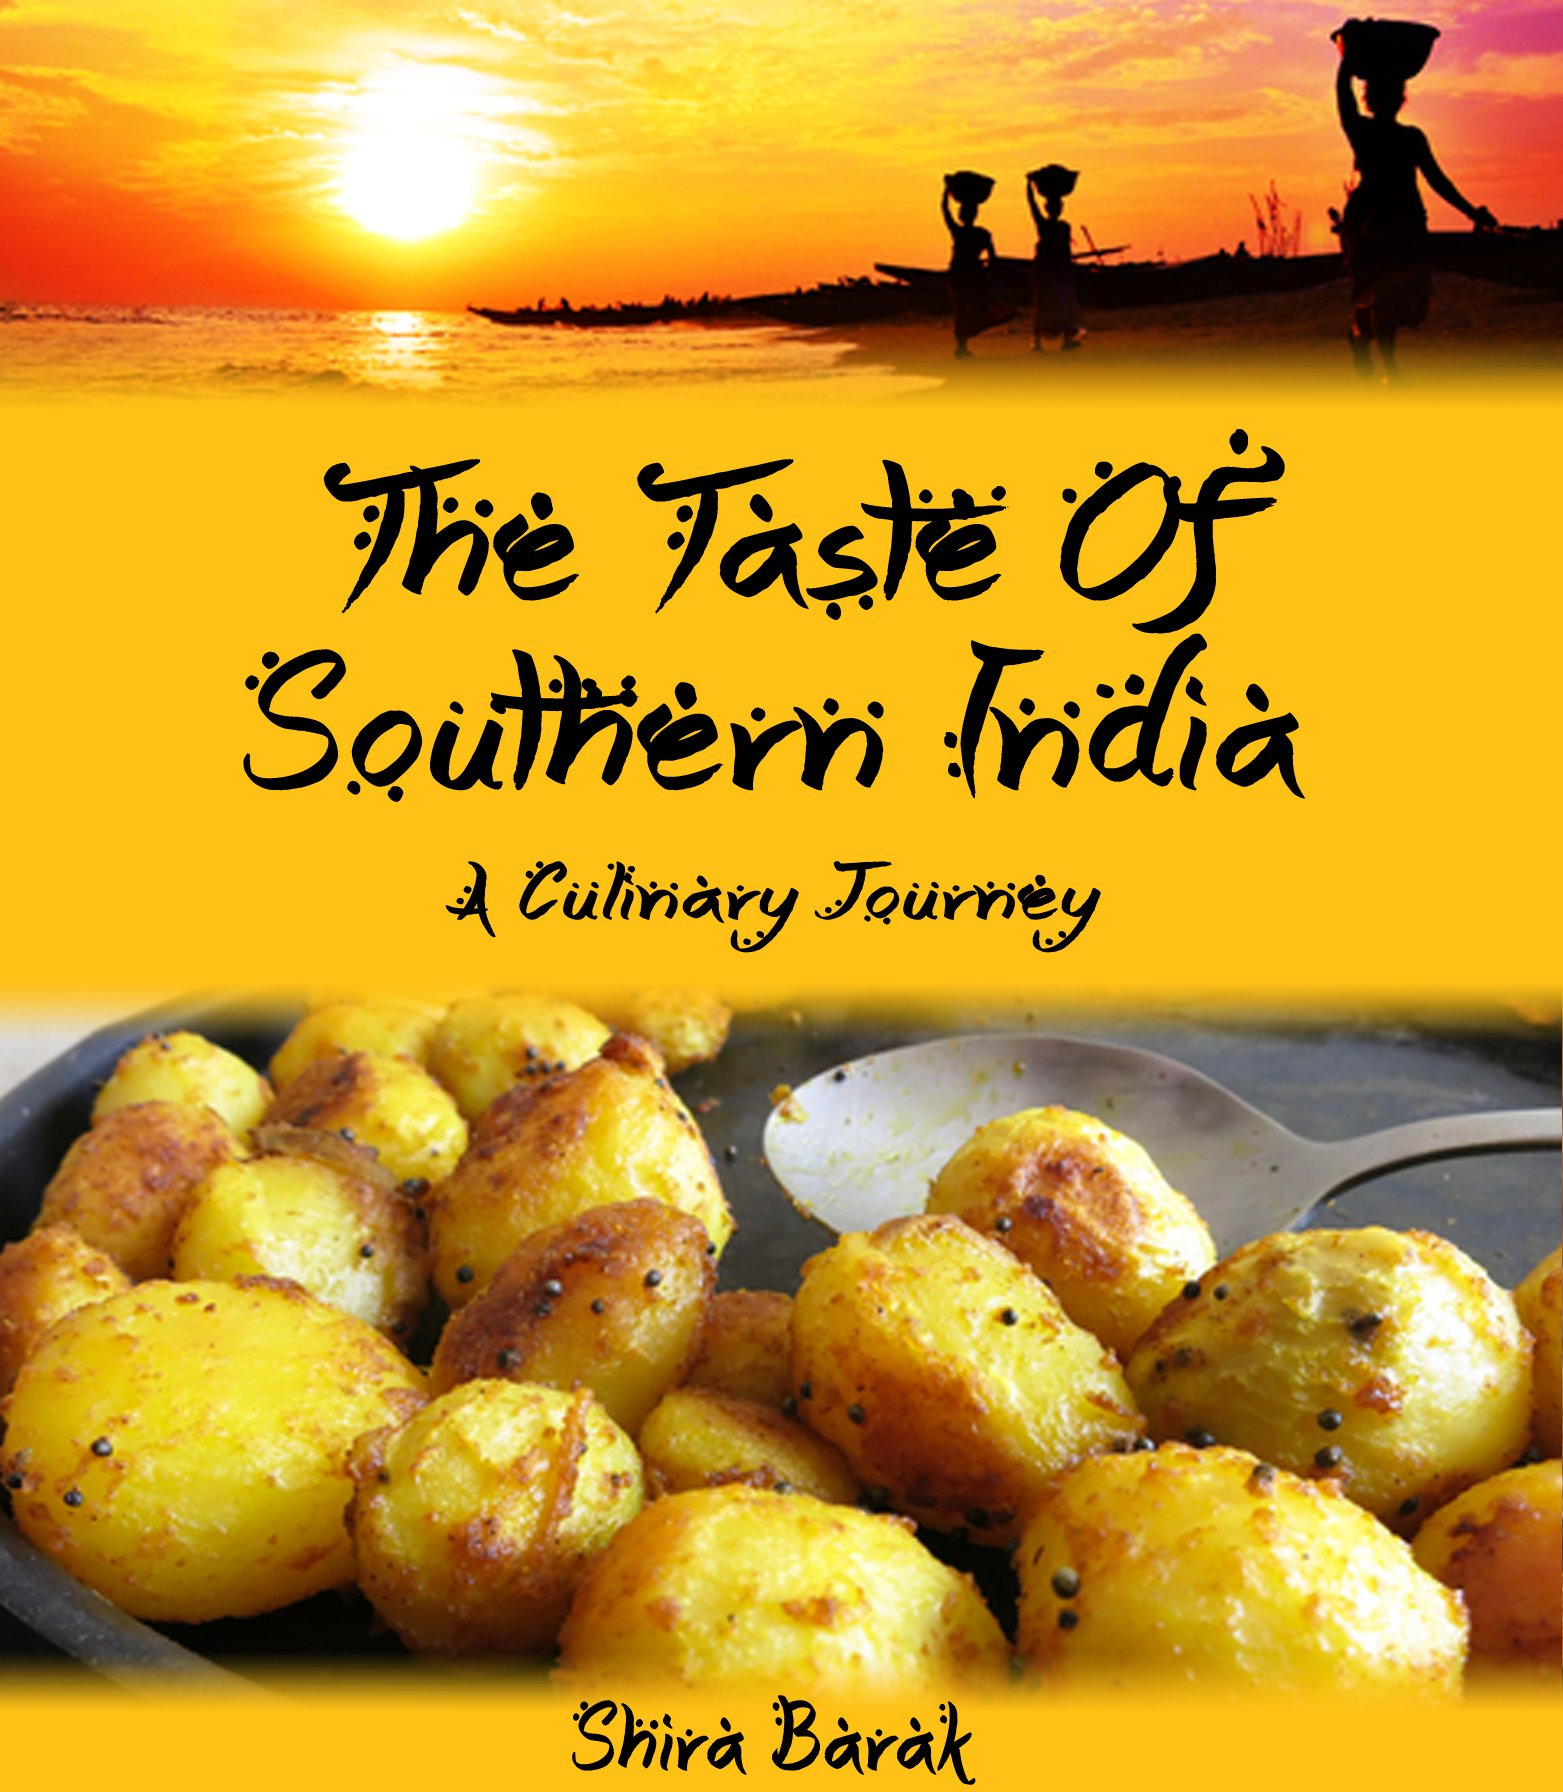 Download Indian Food Cookbook:The Taste of Southern India: A culinary journey through recipes and landscapes (culinary journey cook...